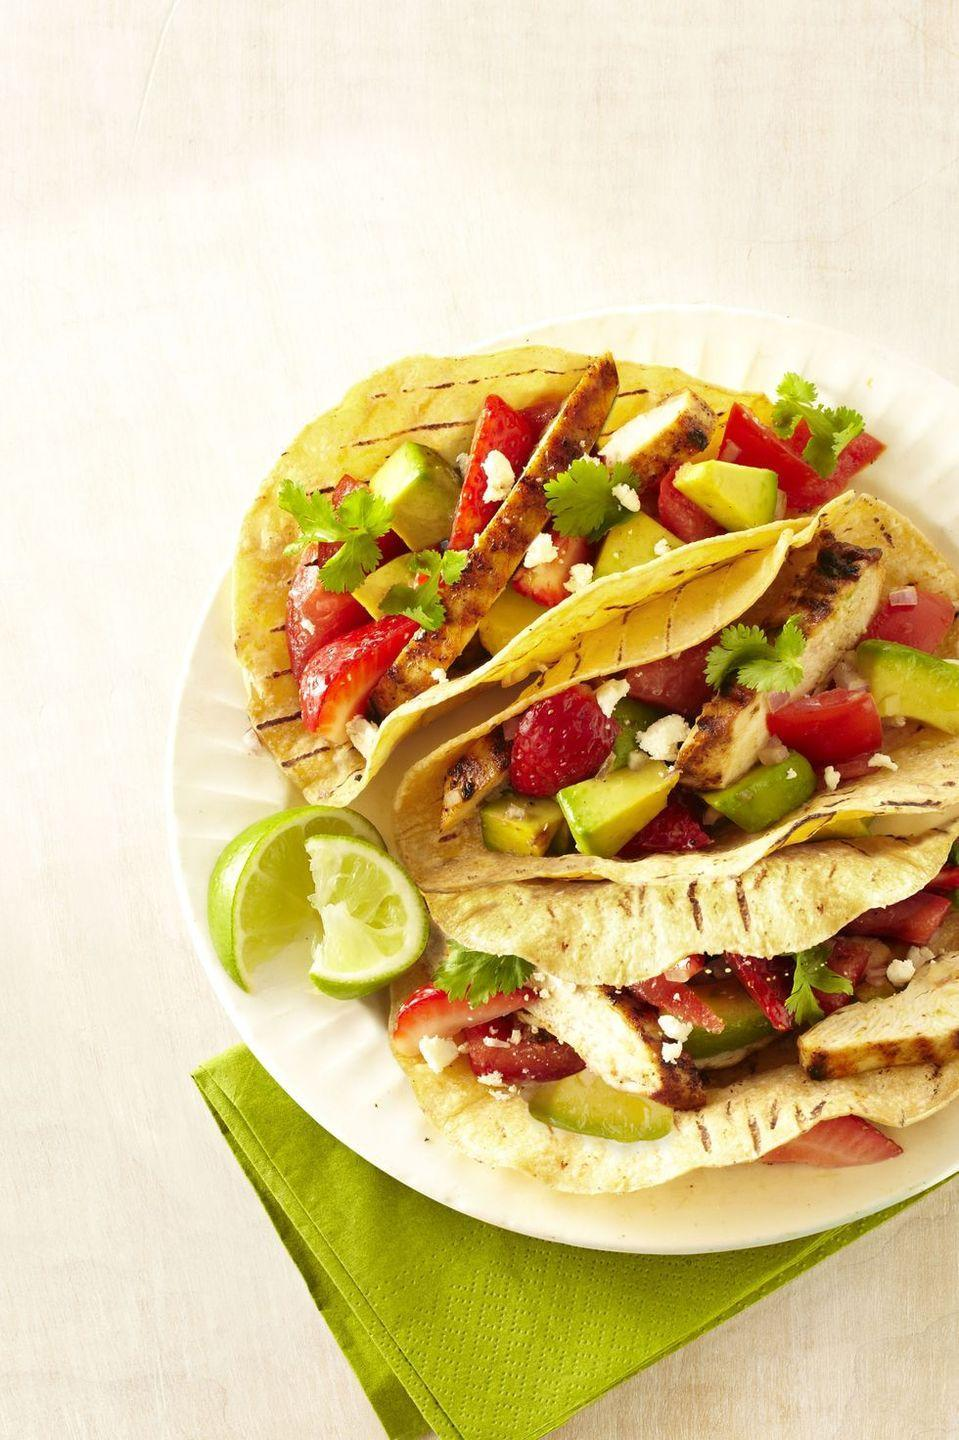 """<p>This chicken taco recipe calls for sweet strawberries and creamy avocado as a topping ... Need we say more?!</p><p><em><a href=""""https://www.goodhousekeeping.com/food-recipes/a14533/grilled-chicken-tacos-strawberry-salsa-recipe-ghk0713/"""" rel=""""nofollow noopener"""" target=""""_blank"""" data-ylk=""""slk:Get the recipe for Grilled-Chicken Tacos with Strawberry Salsa »"""" class=""""link rapid-noclick-resp"""">Get the recipe for Grilled-Chicken Tacos with Strawberry Salsa »</a></em></p>"""